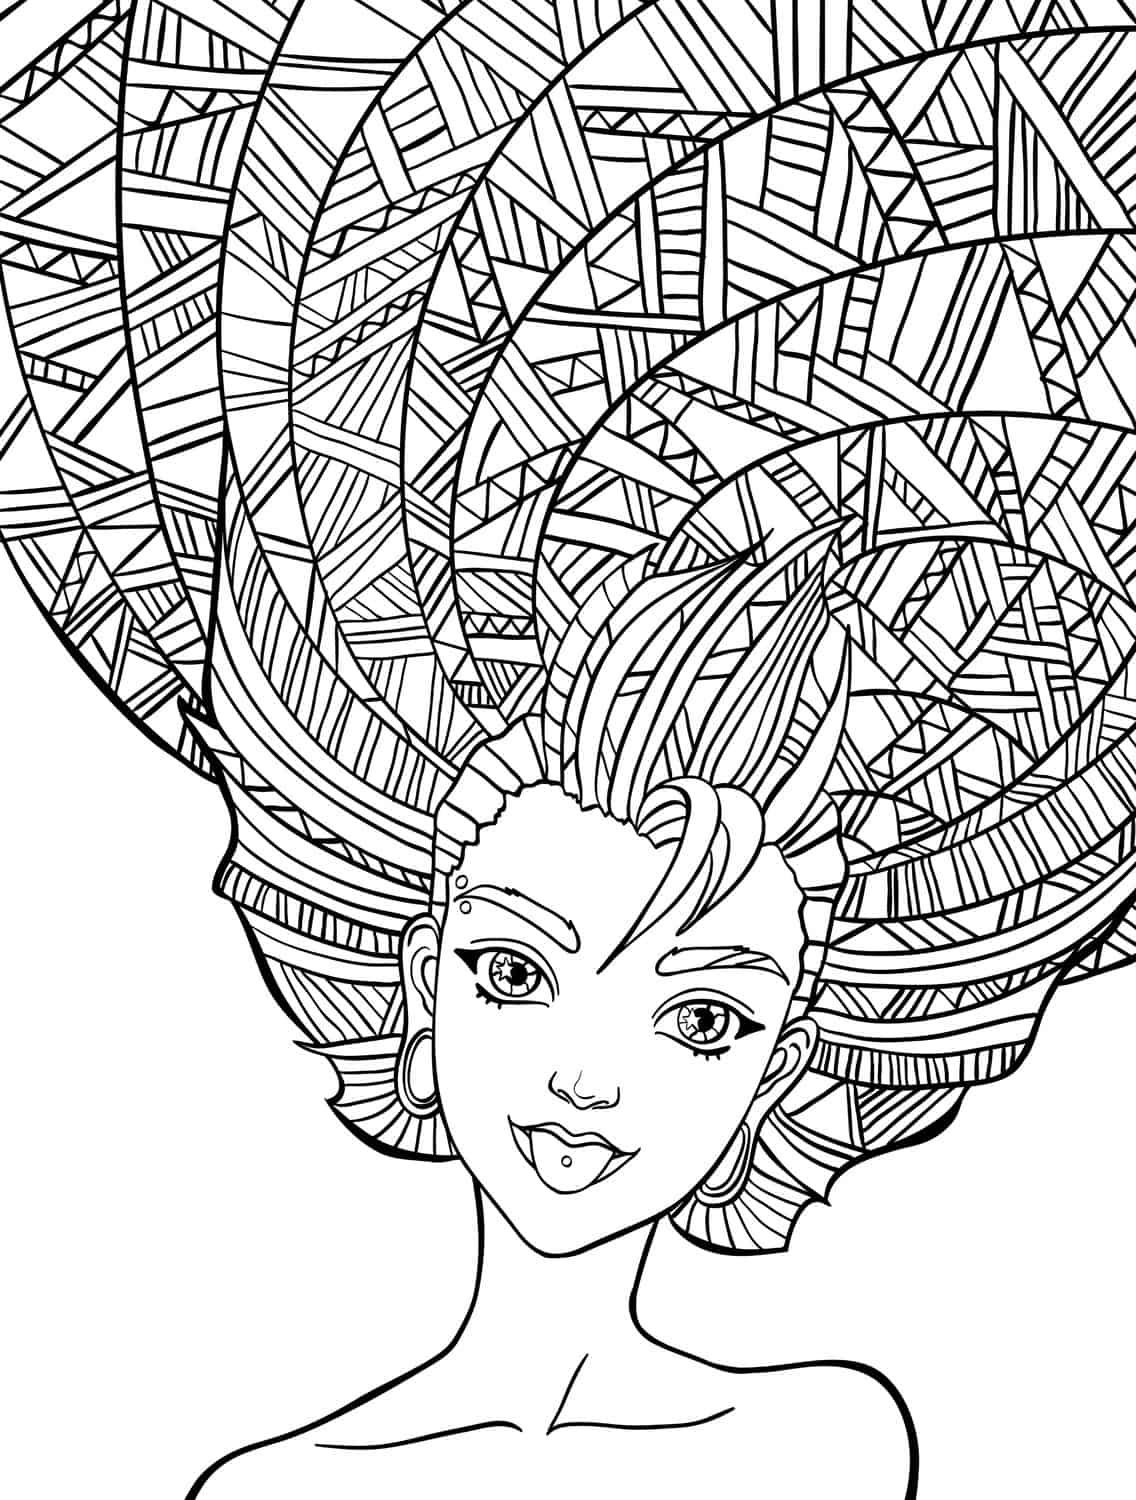 10 crazy hair adult coloring pages page 9 of 12 nerdy Coloring book hair